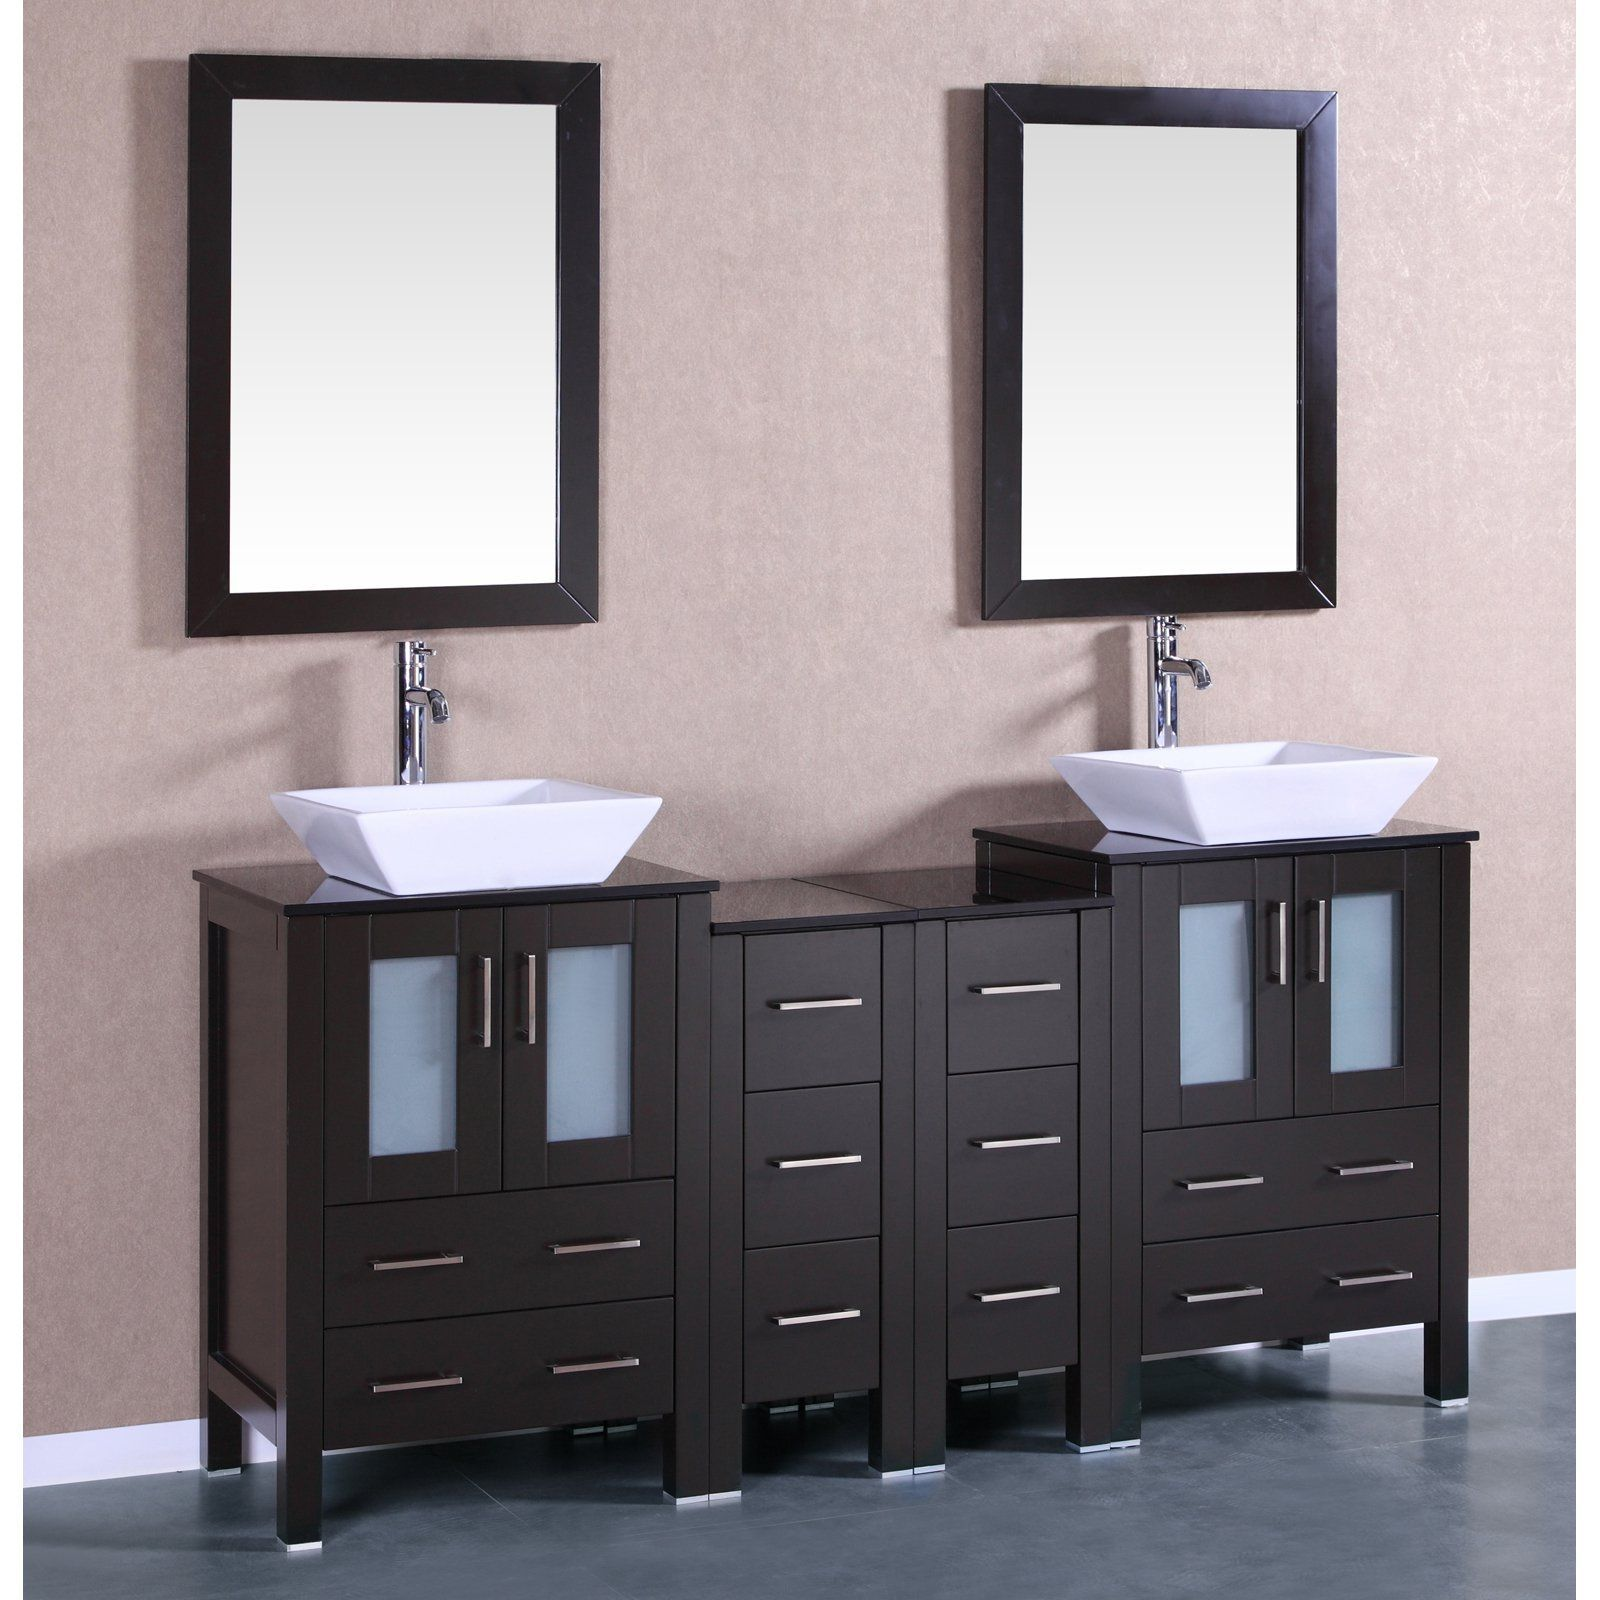 Bosconi freestanding double bathroom vanity absqbg products